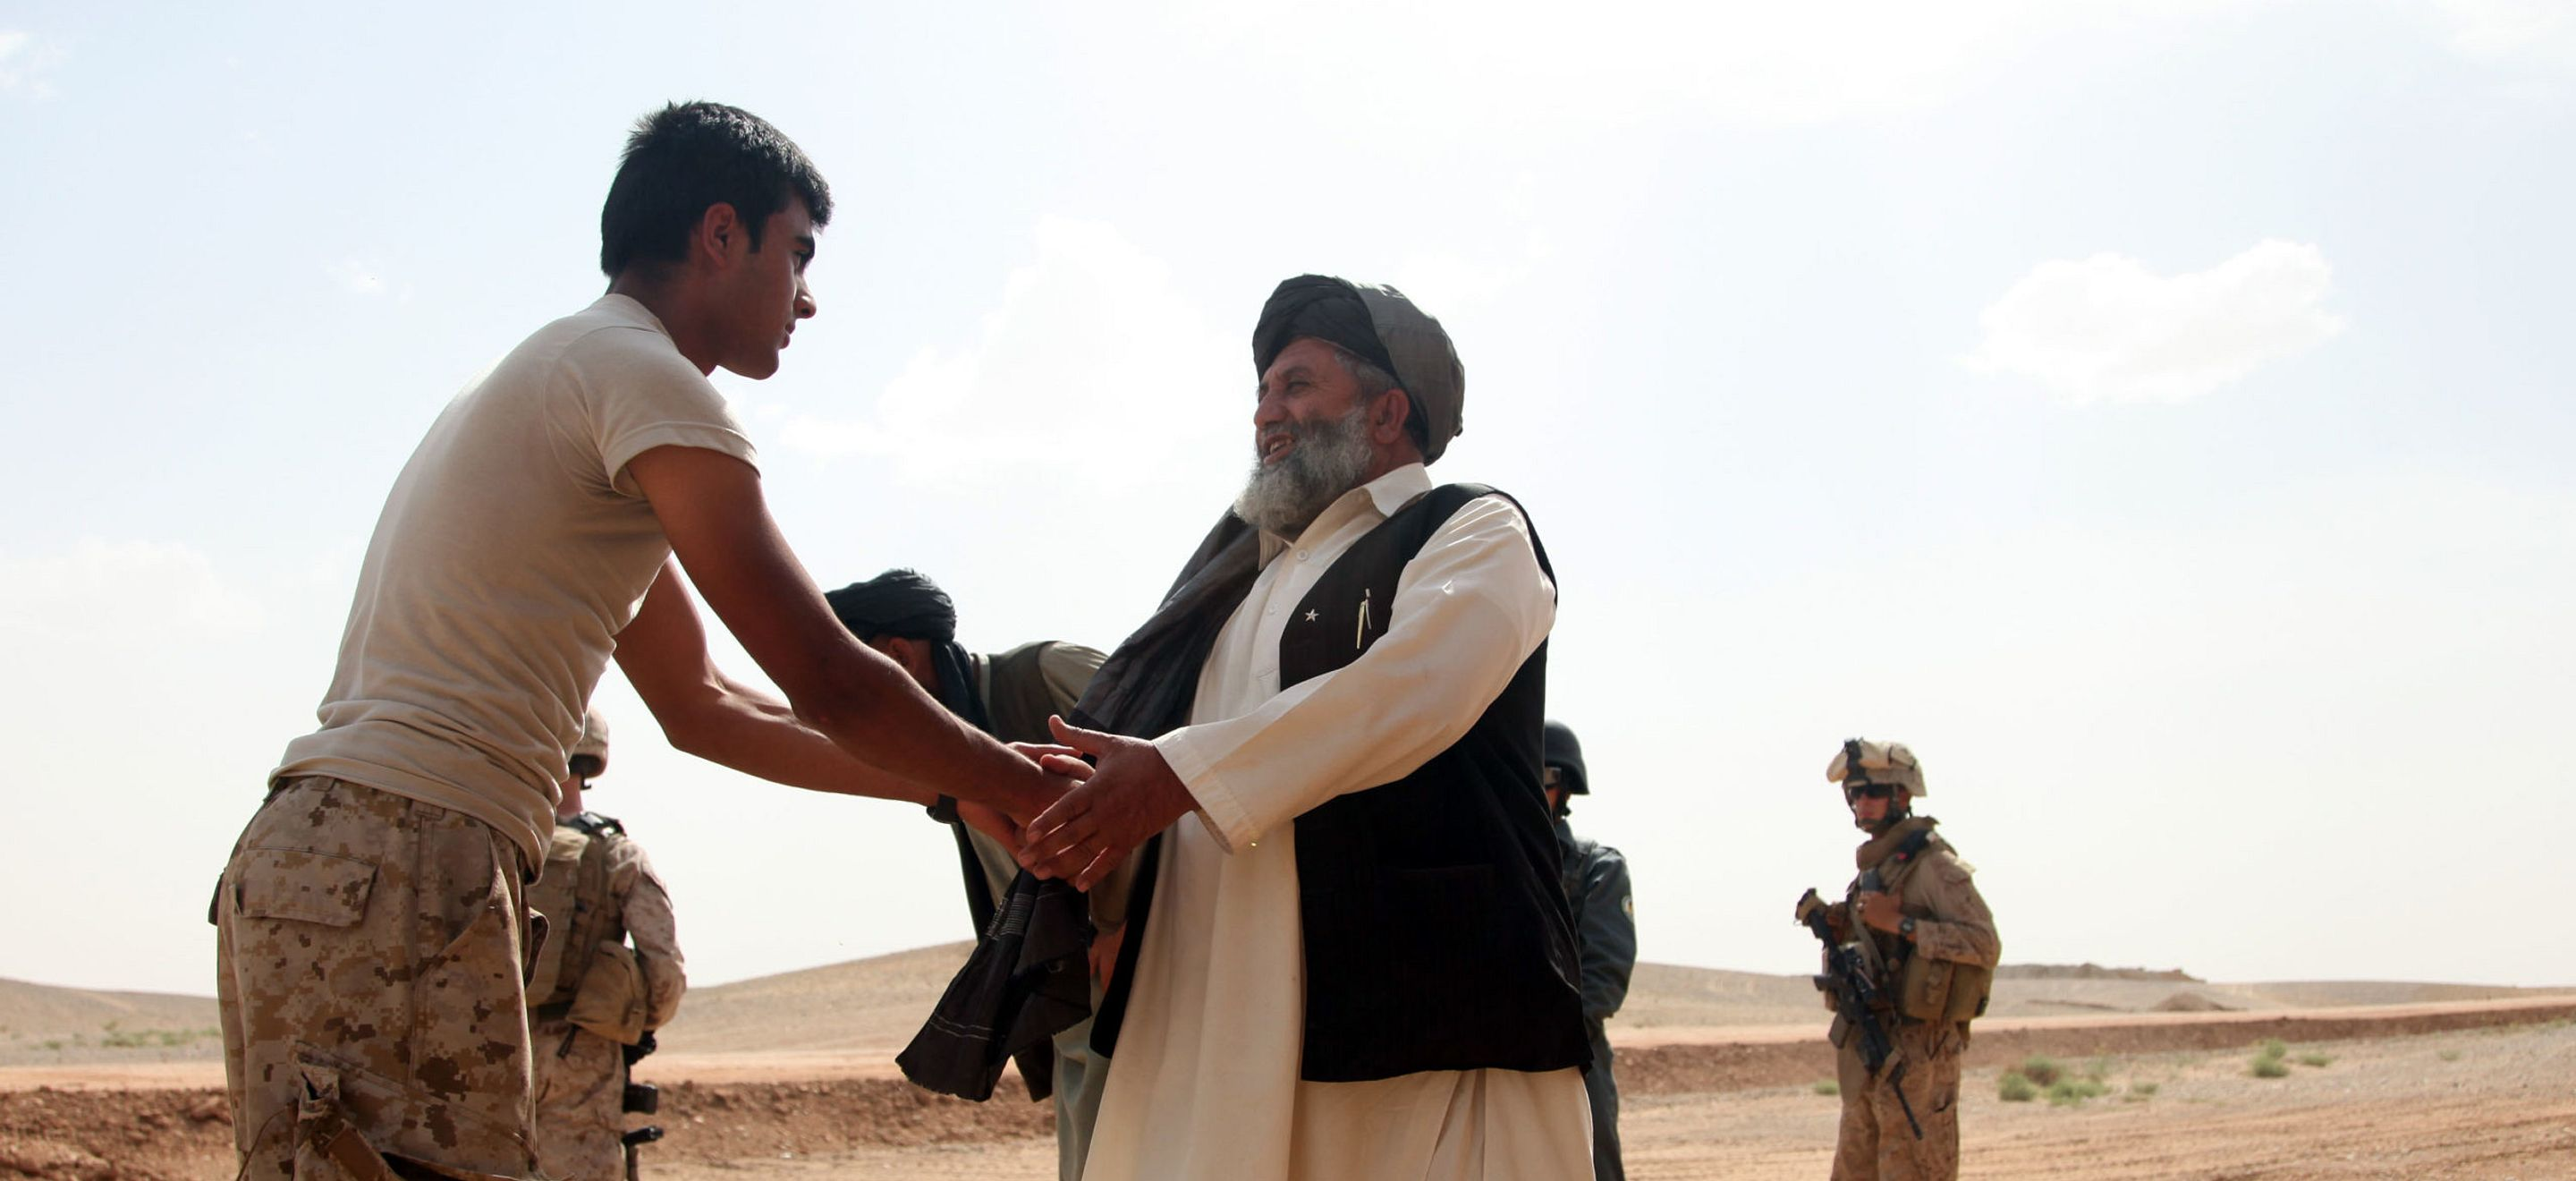 An Afghan interpreter shakes the hand of a local Afghan elected official. The official wears a white collared tunic with black vest and a turban, he has a bushy grey beard. The interpreter has short black hair and wears a t-shirt and camouflage pants. There are U.S. soldiers in the background.